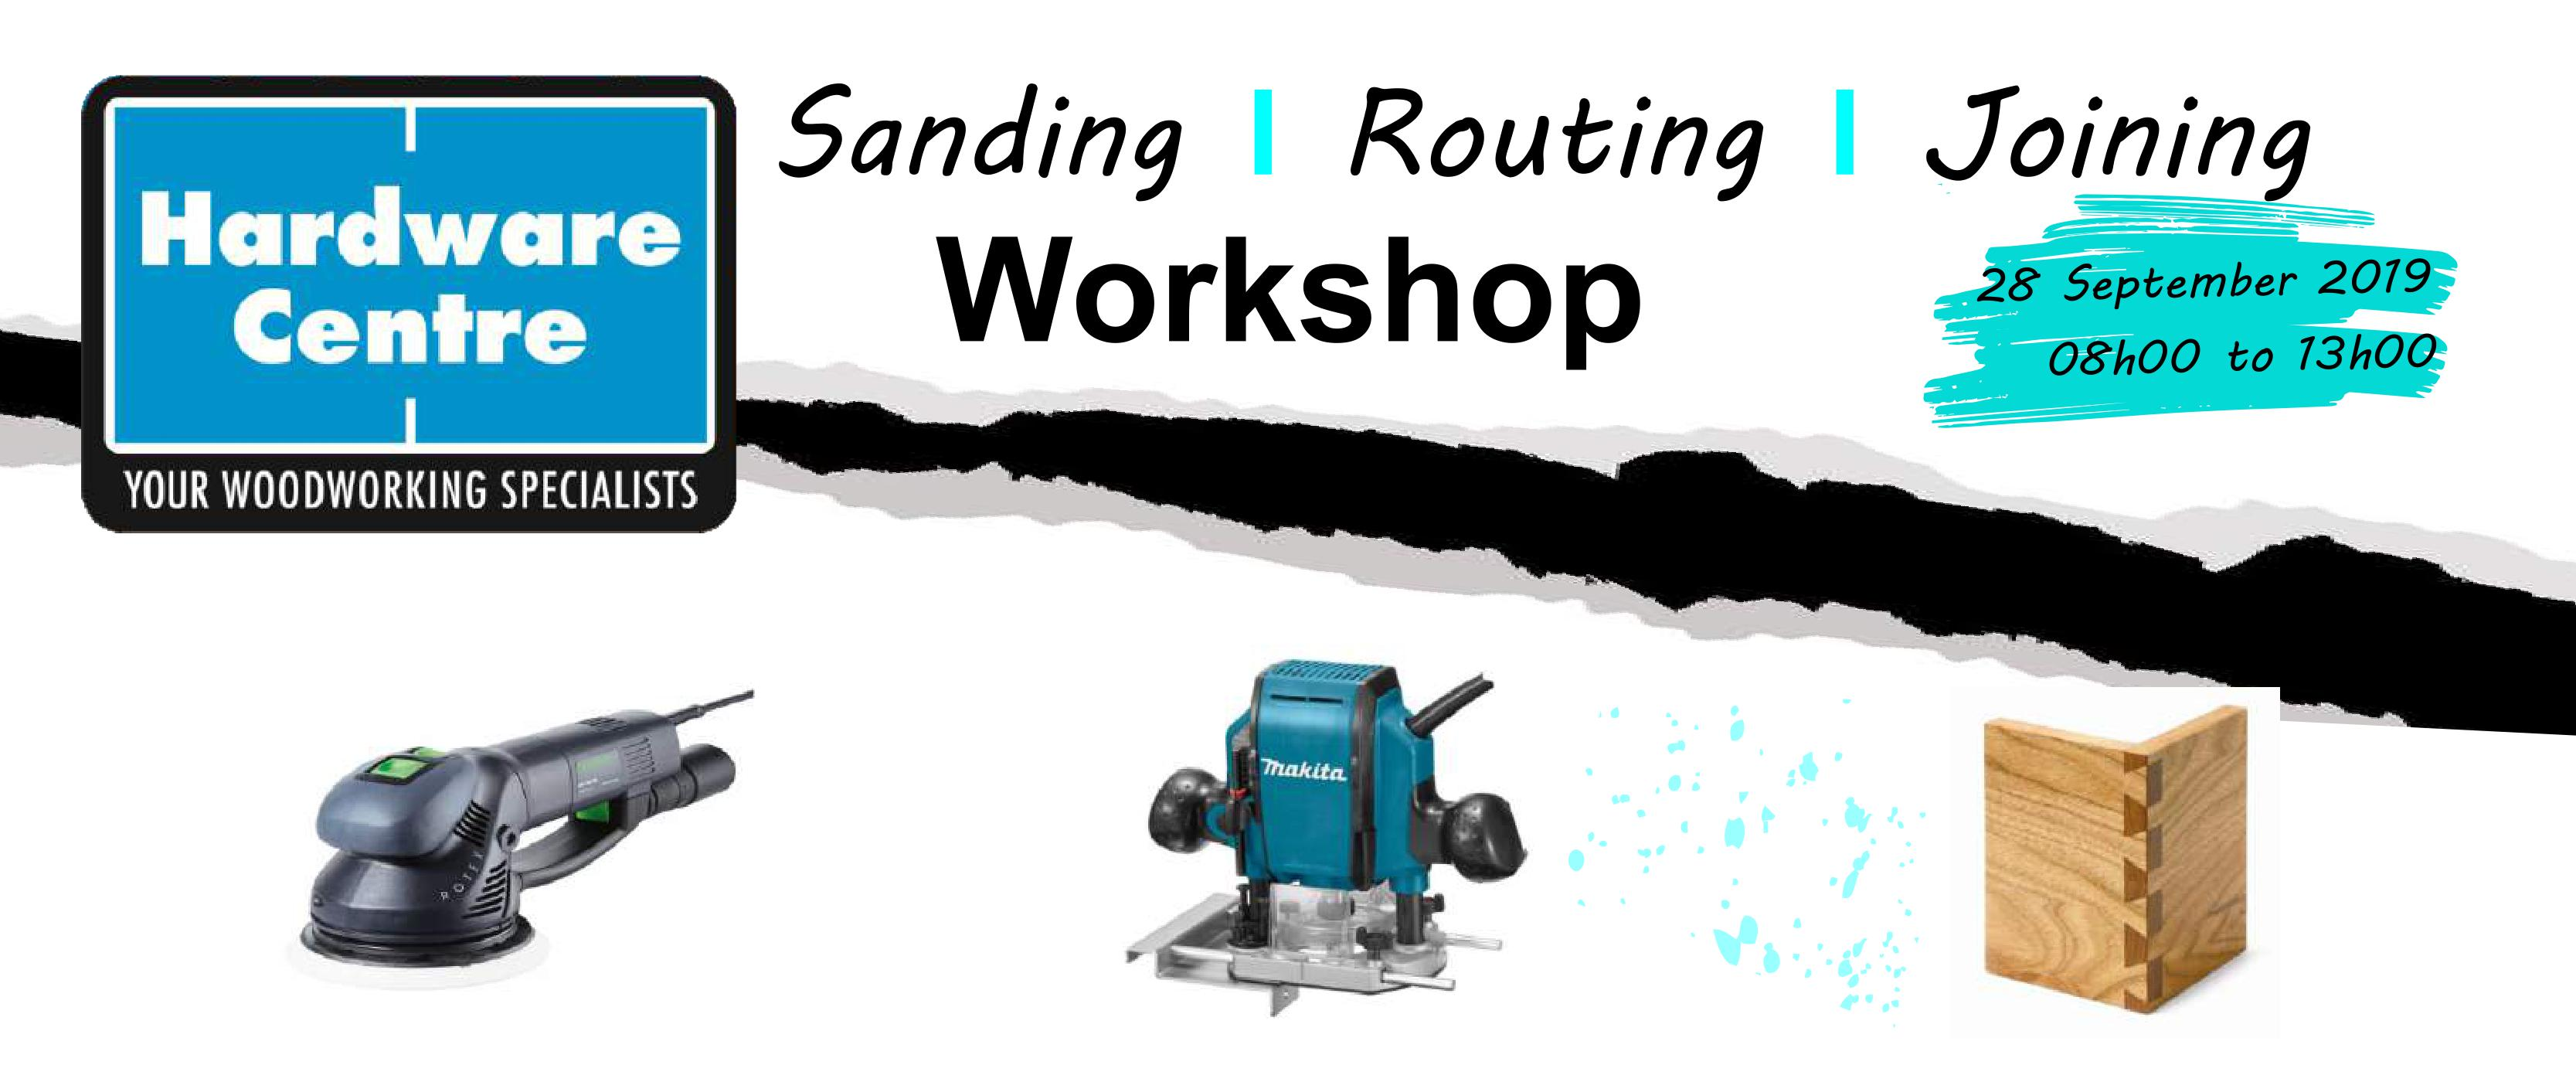 Hardware Centre Cape Town Joining, Routering and Sanding Workshop! @ Hardware Centre Cape Town